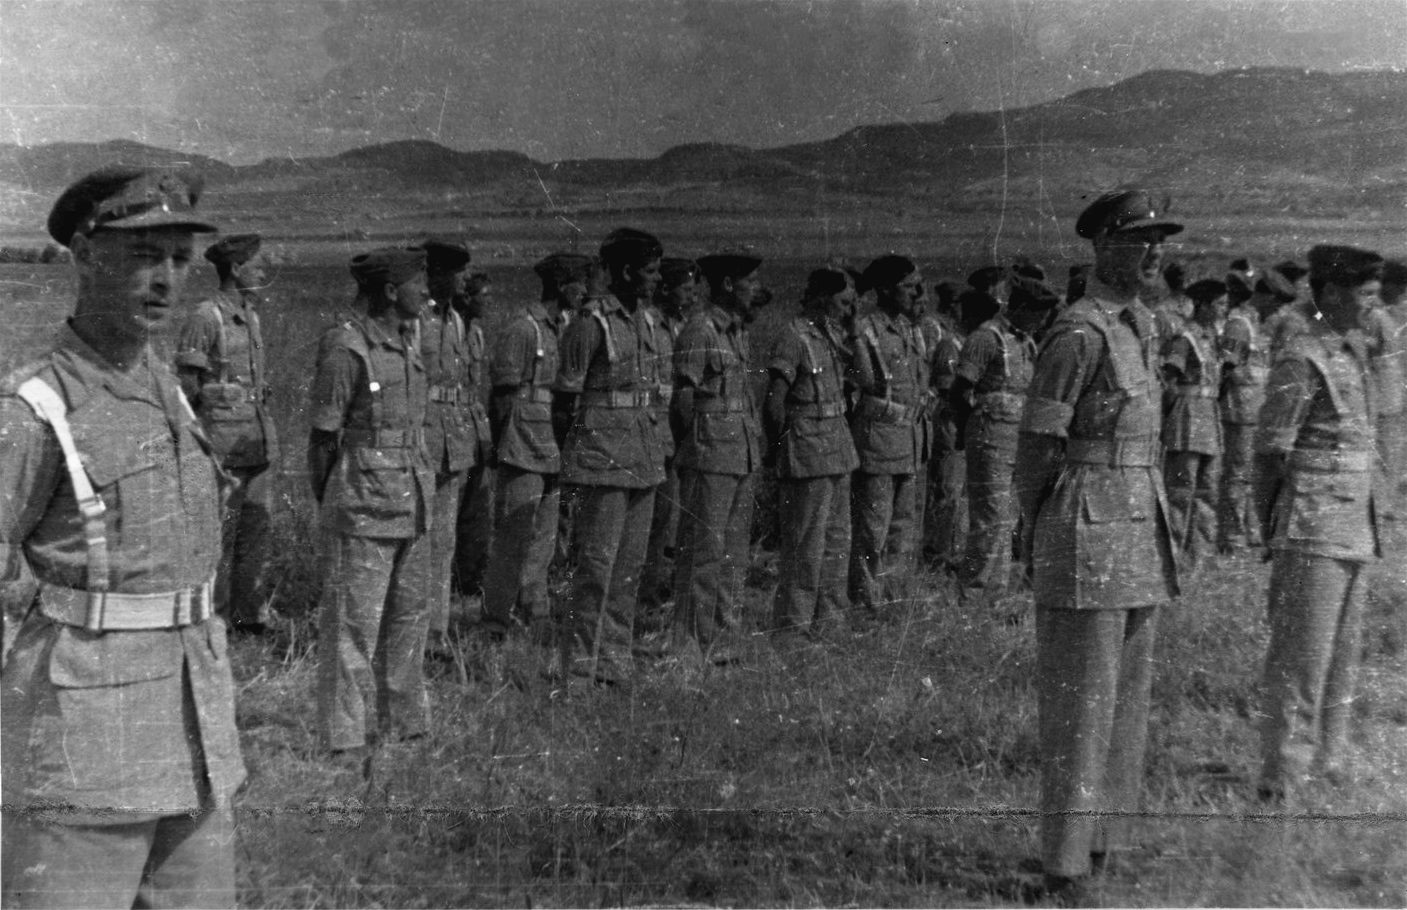 Anothor photo of 3RHA on parade after the end of the N African Campaign in Tunisia, 1943.